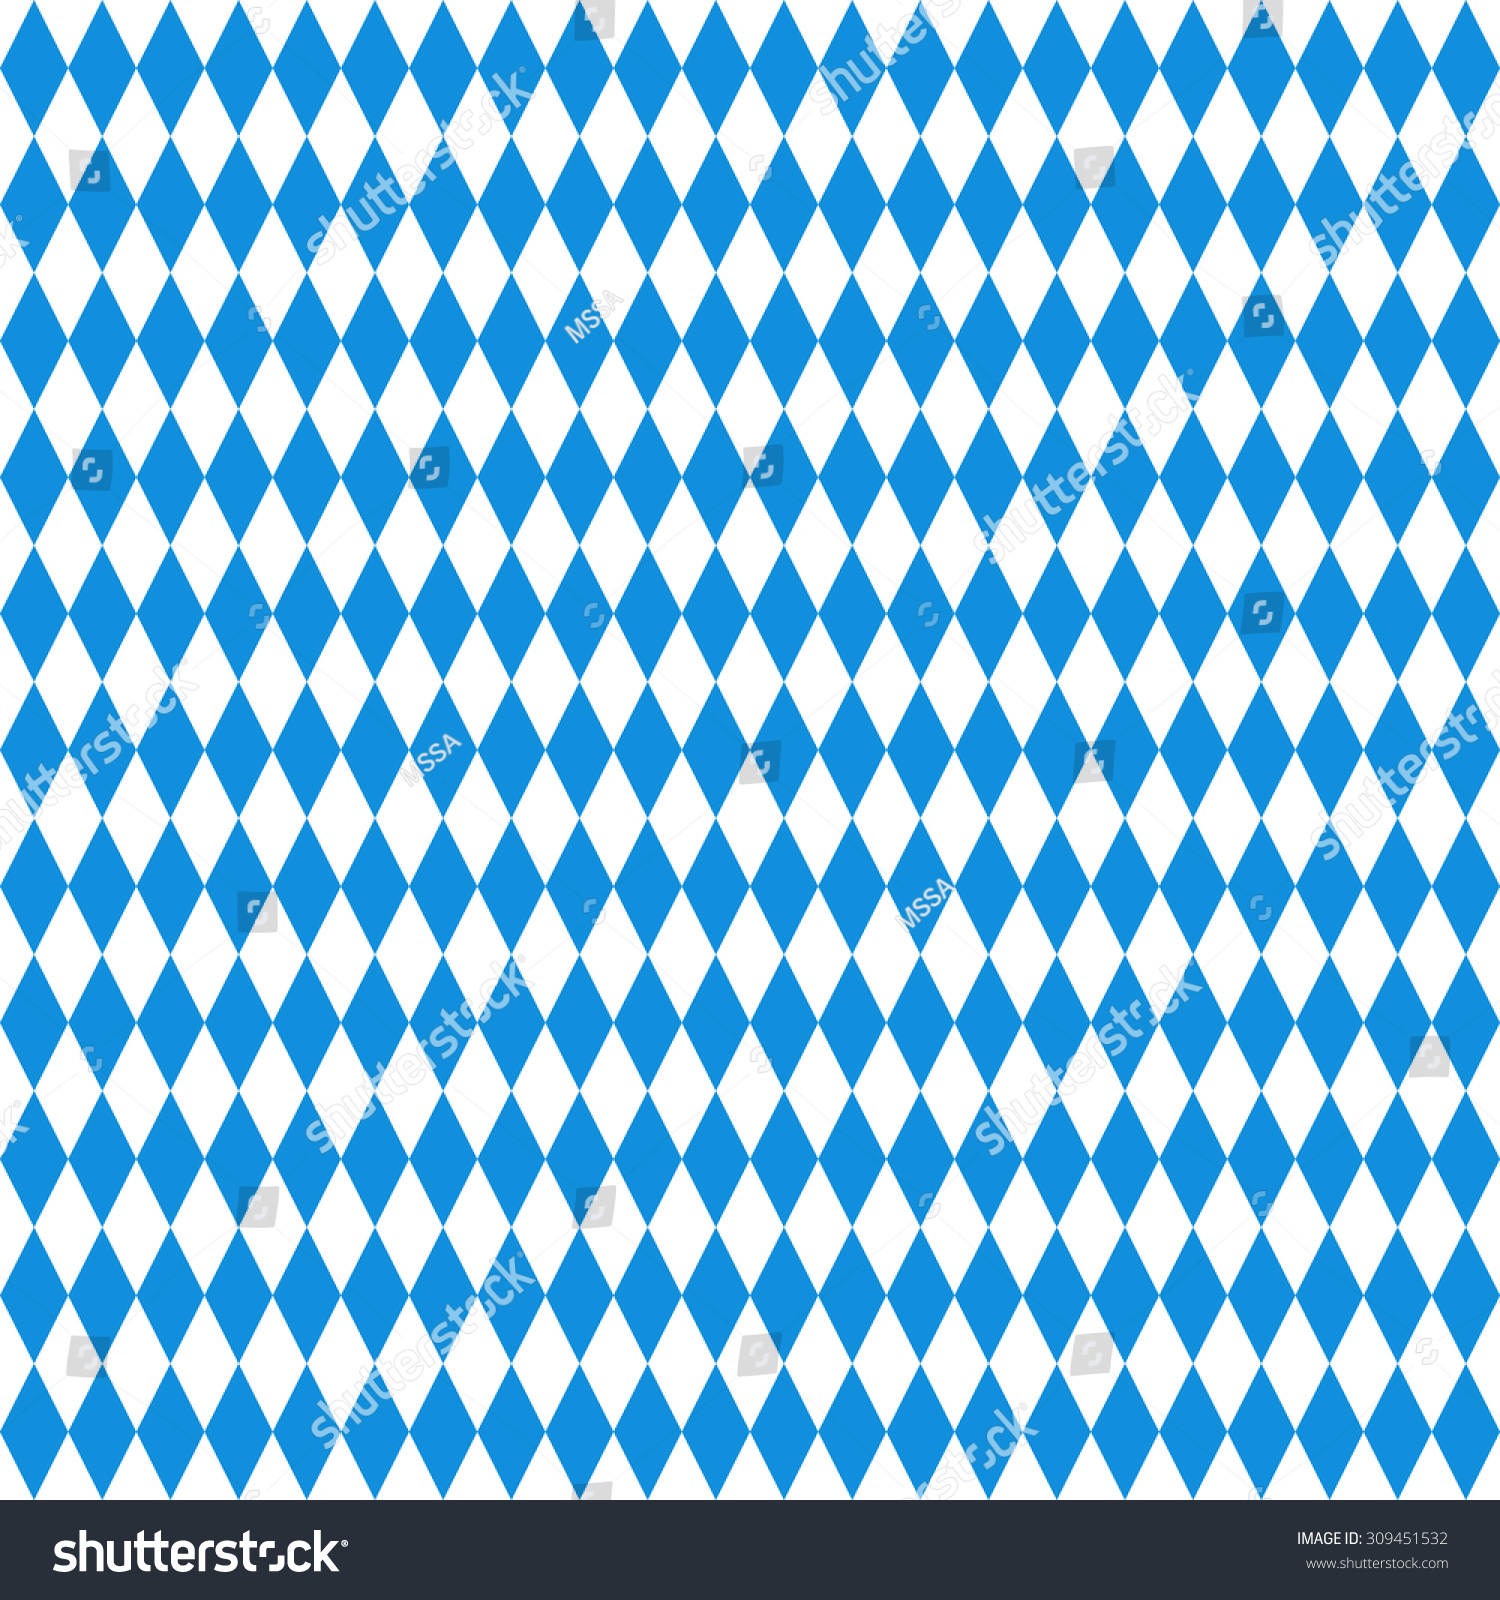 oktoberfest checkered background blue diamonds on stock